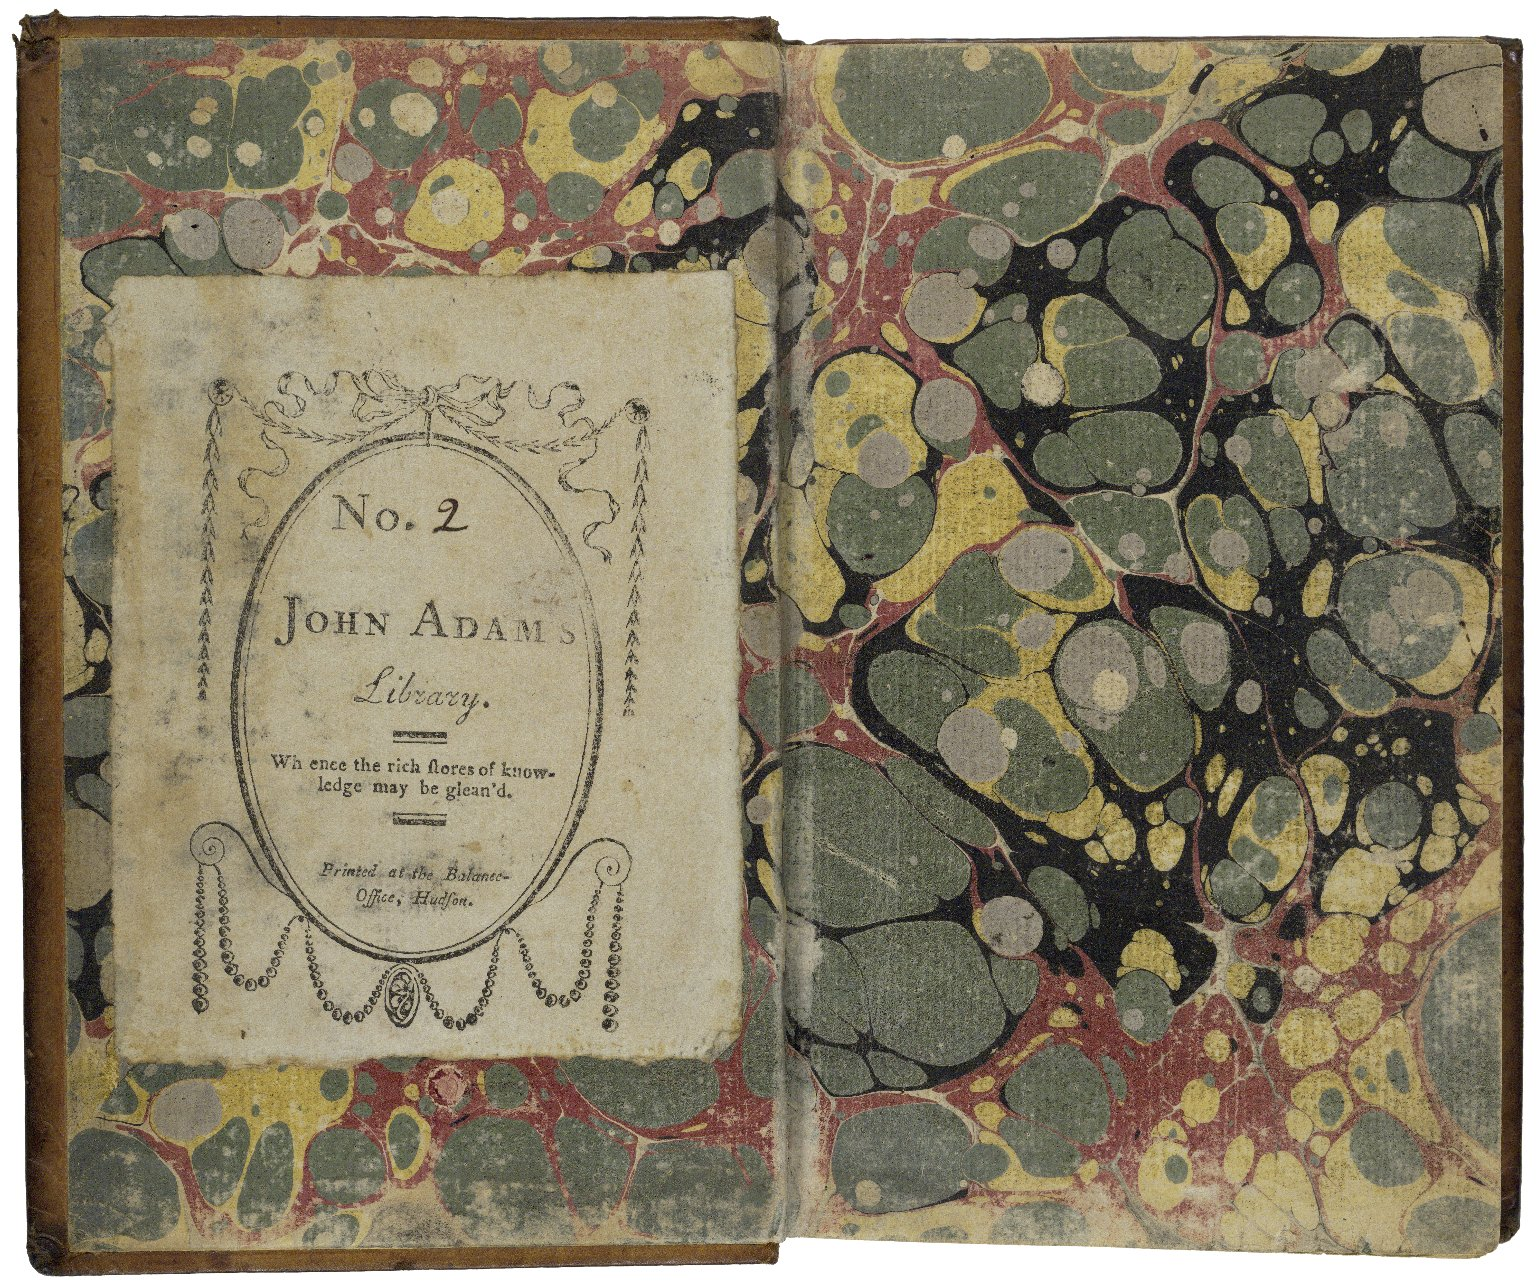 The plays and poems of William Shakespeare. Corrected from the latest and best London editions, with notes, by Samuel Johnson, L.L.D. To which are added, a glossary and the life of the author.